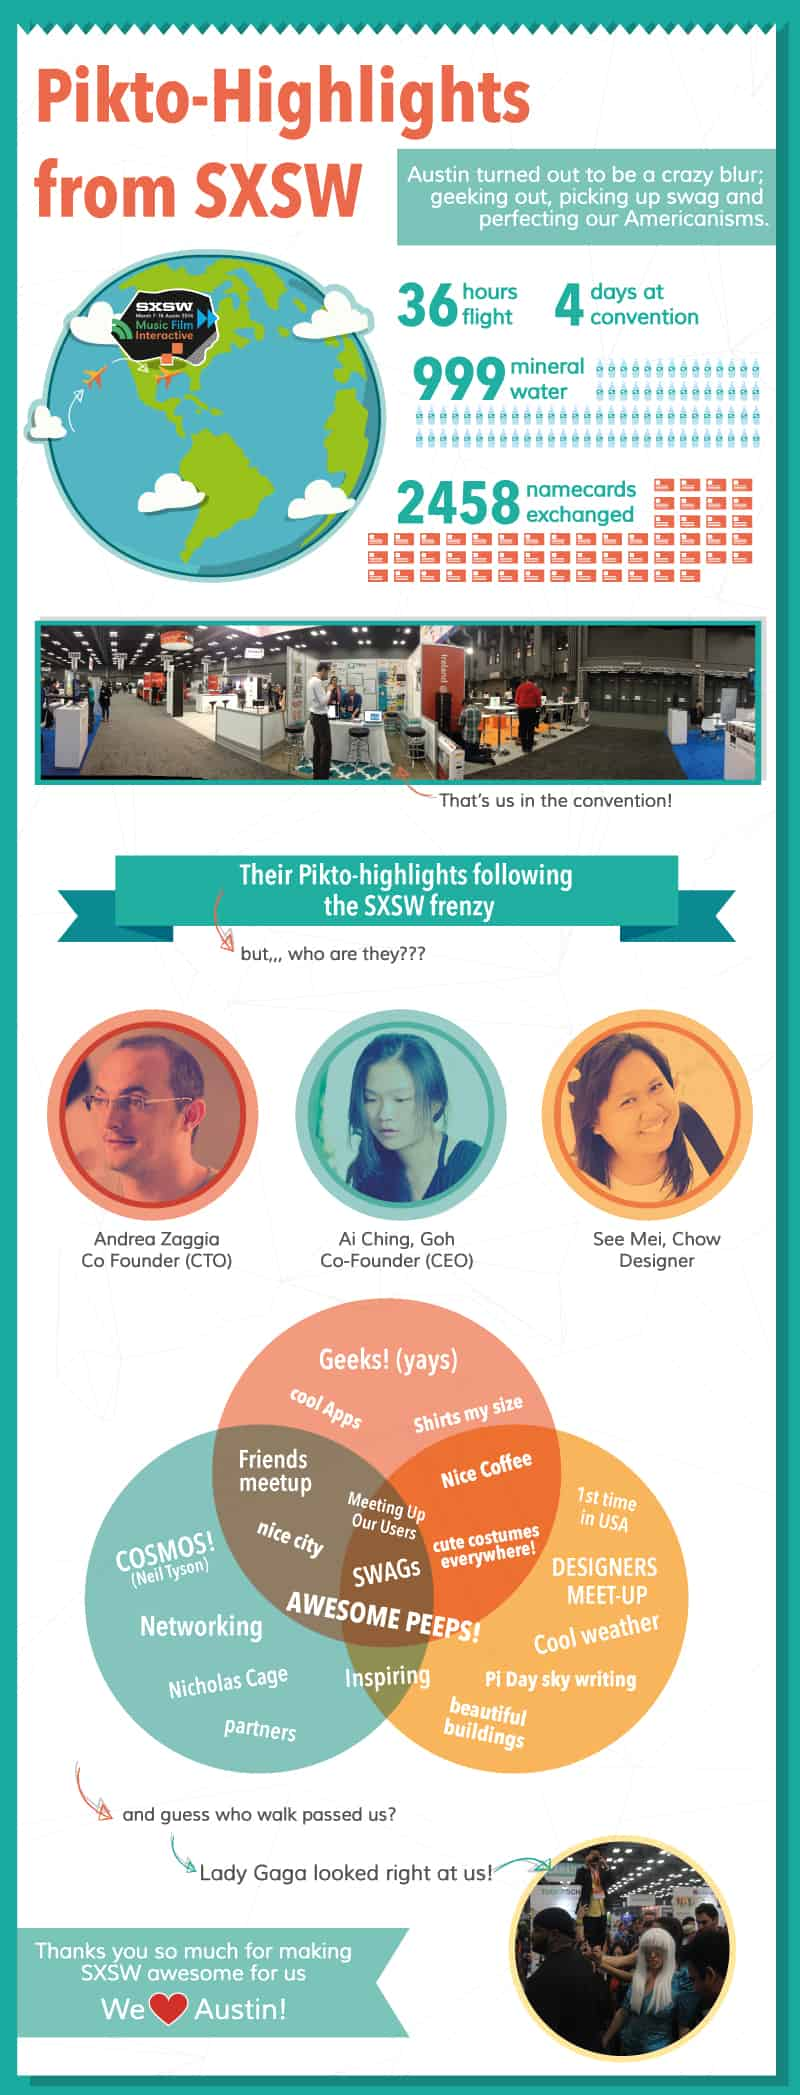 sxsw pikto highlights infographic